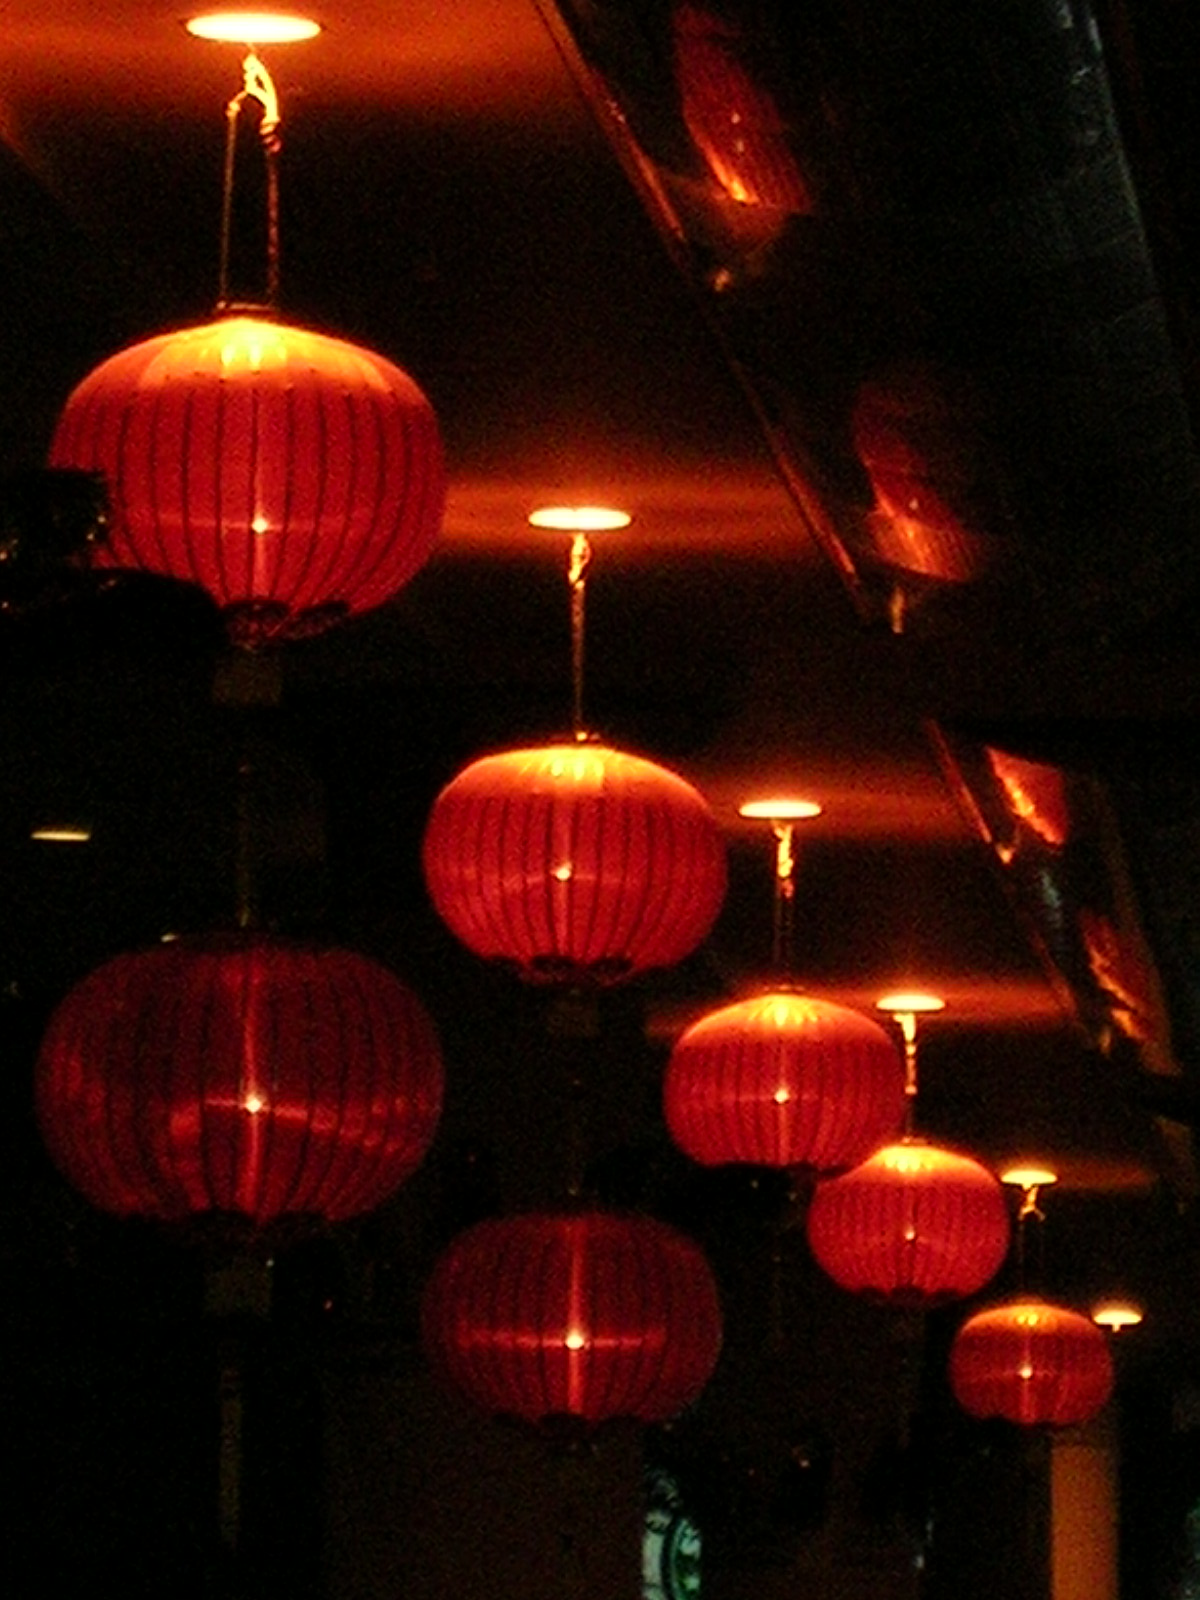 https://i1.wp.com/upload.wikimedia.org/wikipedia/commons/9/9e/Red_lanterns.JPG